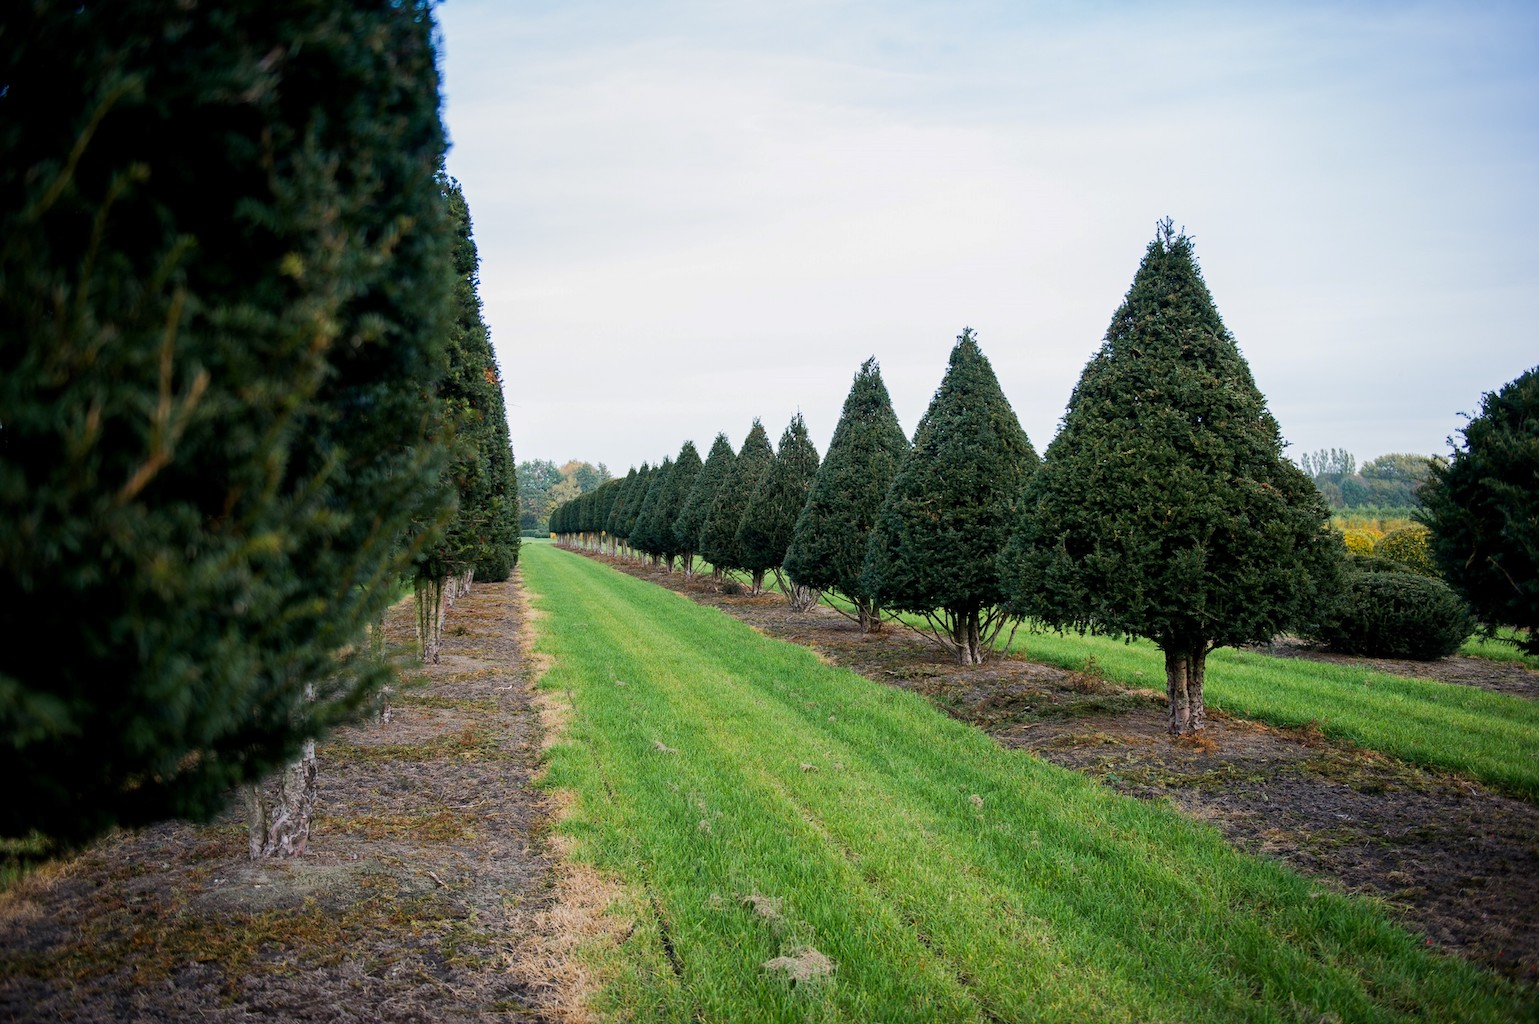 Taxus baccata topiary Yew cones with clear stem